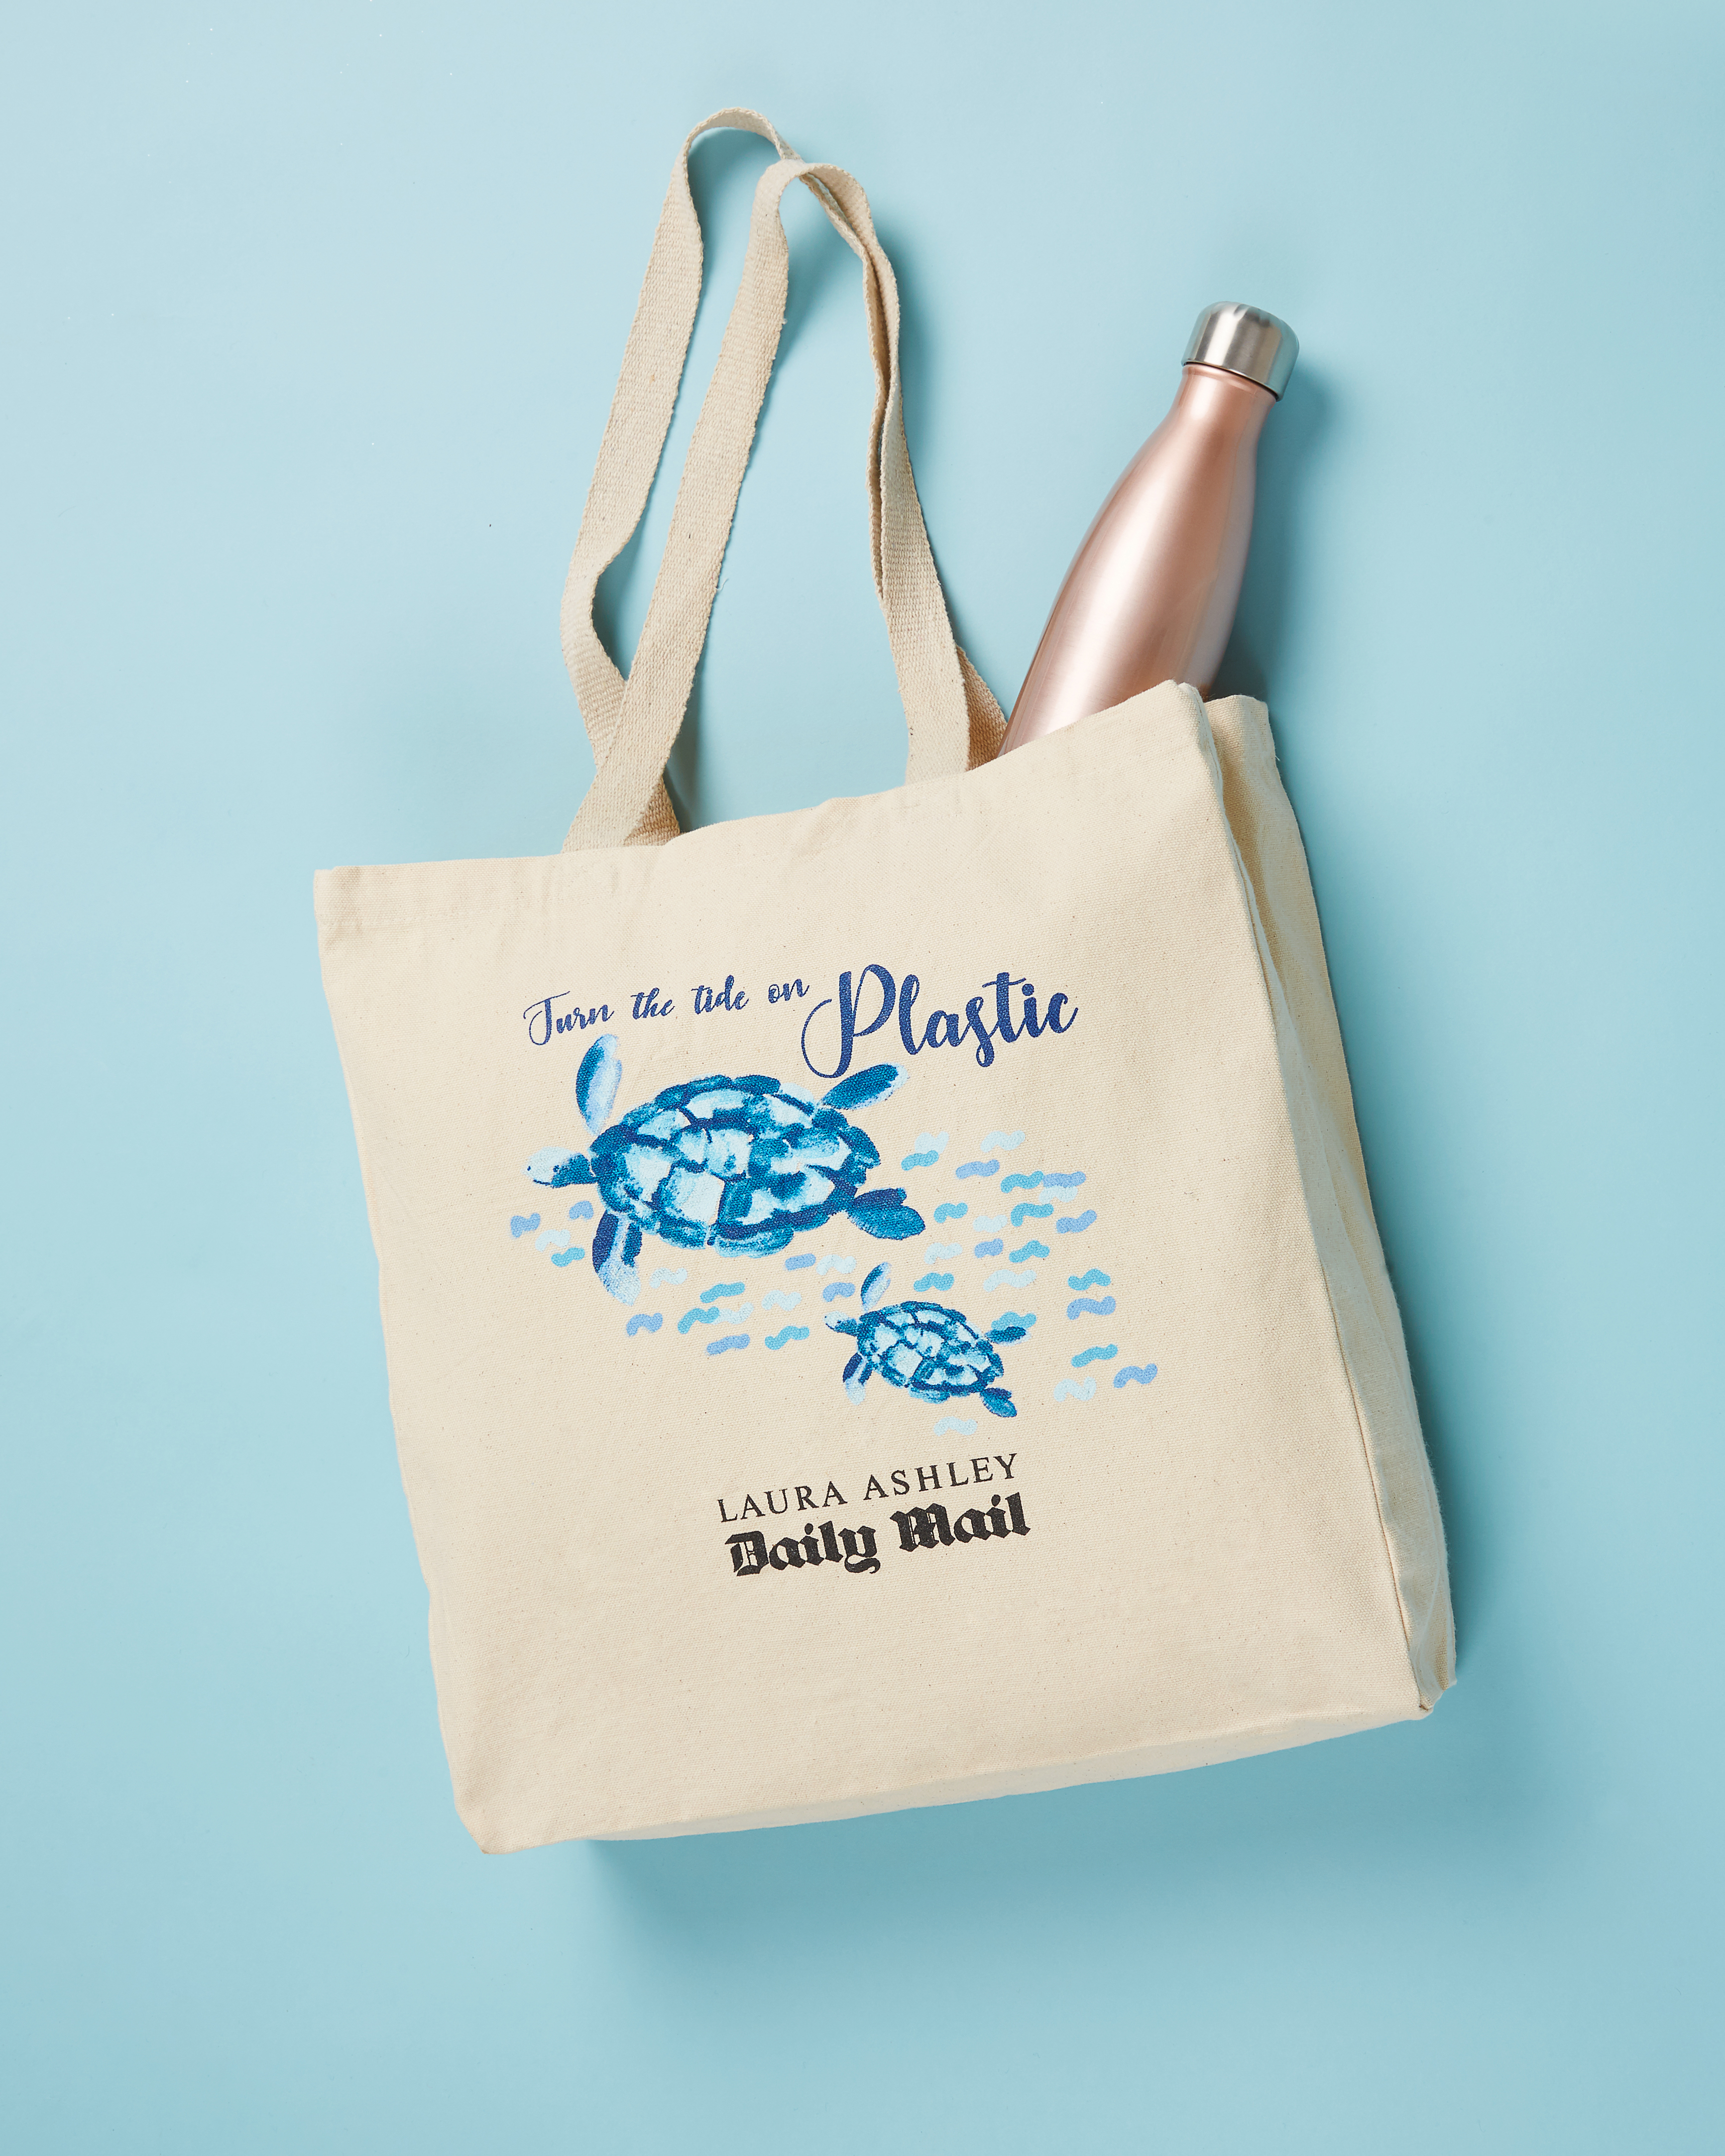 Laura Ashley Daily Mail Turn The Tide on Plastic Free Tote Bag